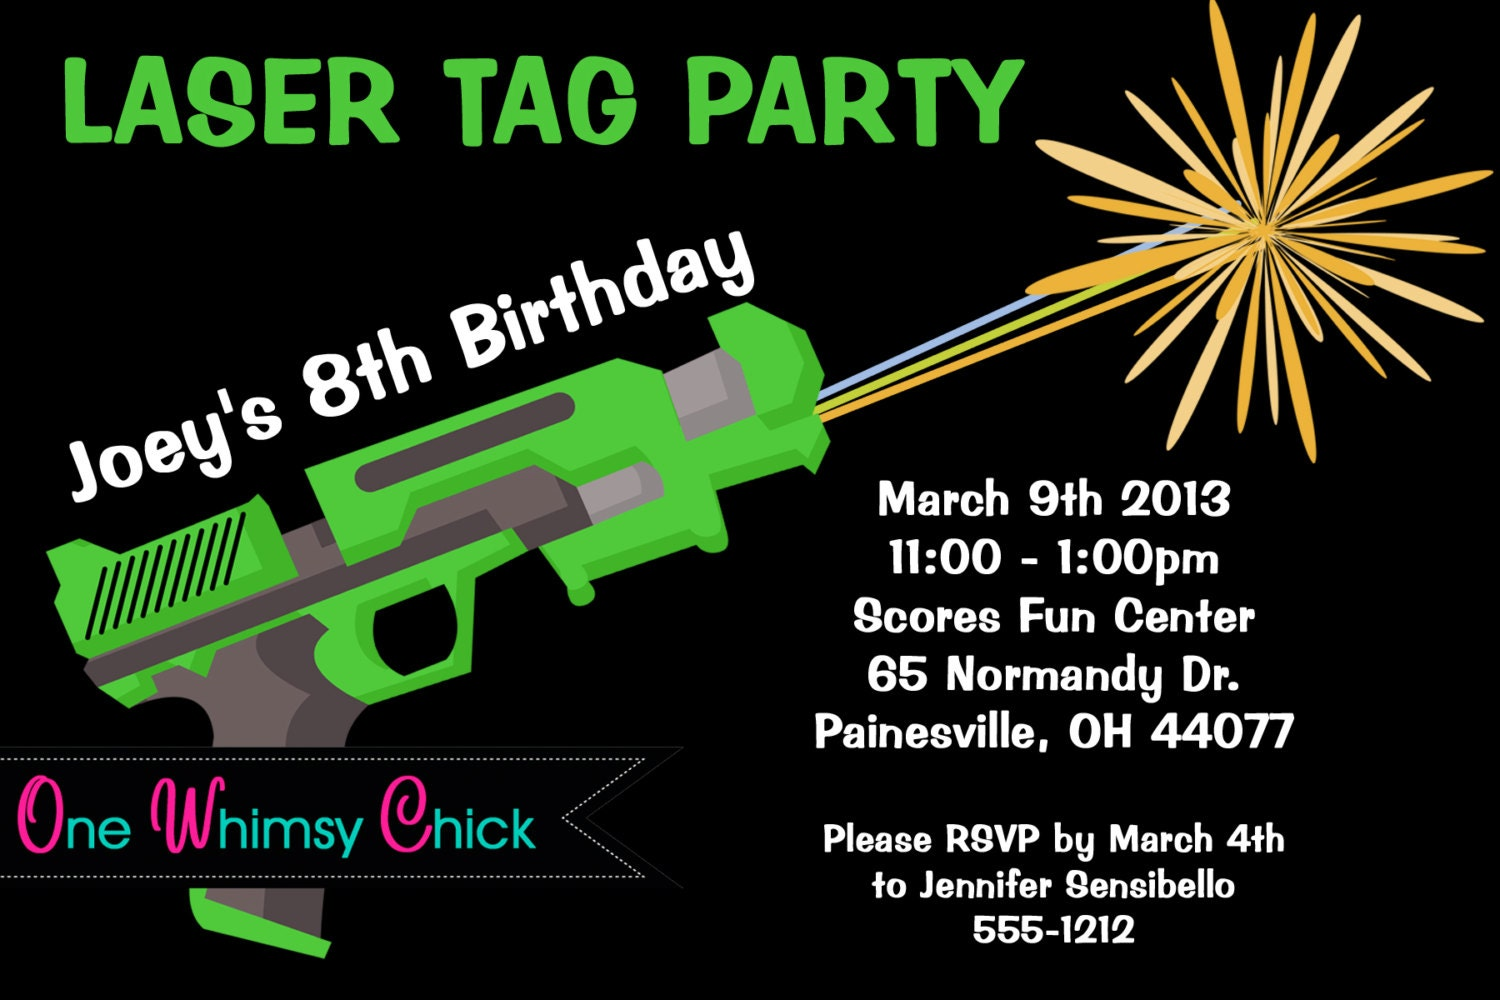 photograph about Laser Tag Birthday Invitations Free Printable named Laser Tag Birthday Invitation - Printable or Revealed - Laser Tag Invites for Boys or Women